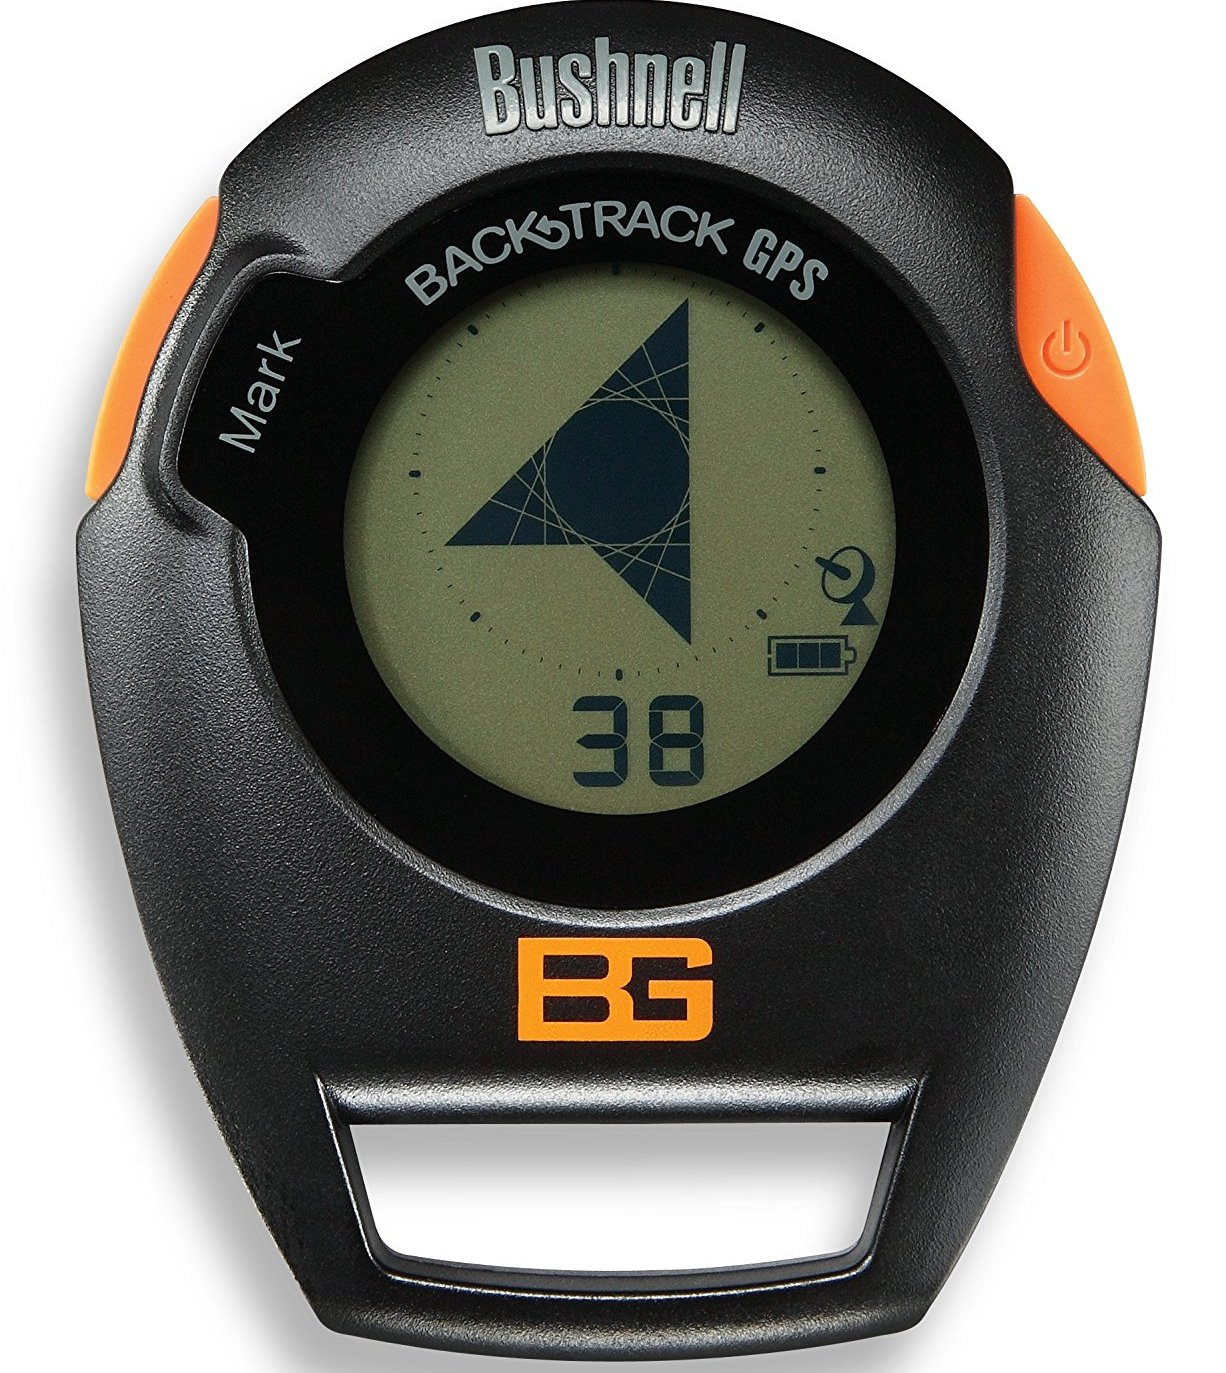 Bushnell Bear Grylls Edition Back Track Original G2 GPS